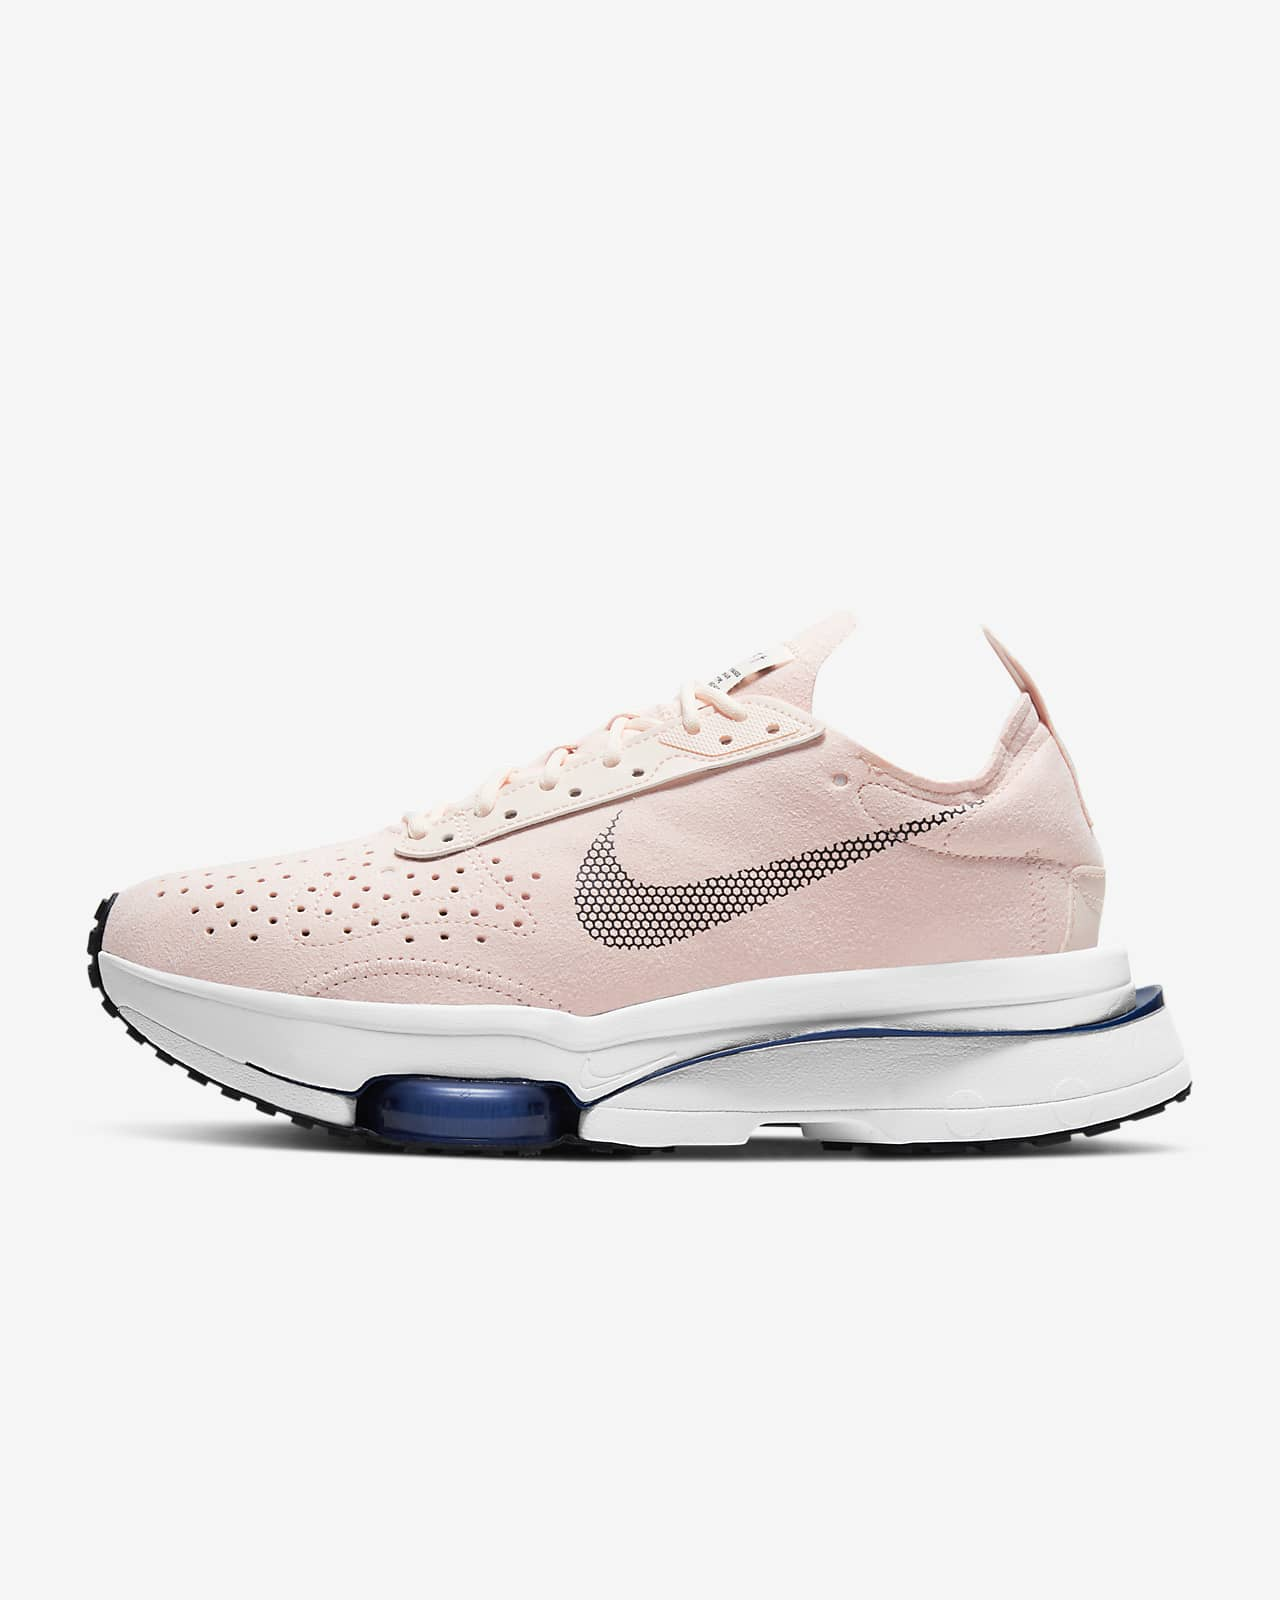 Chaussure Nike Air Zoom Type pour Femme